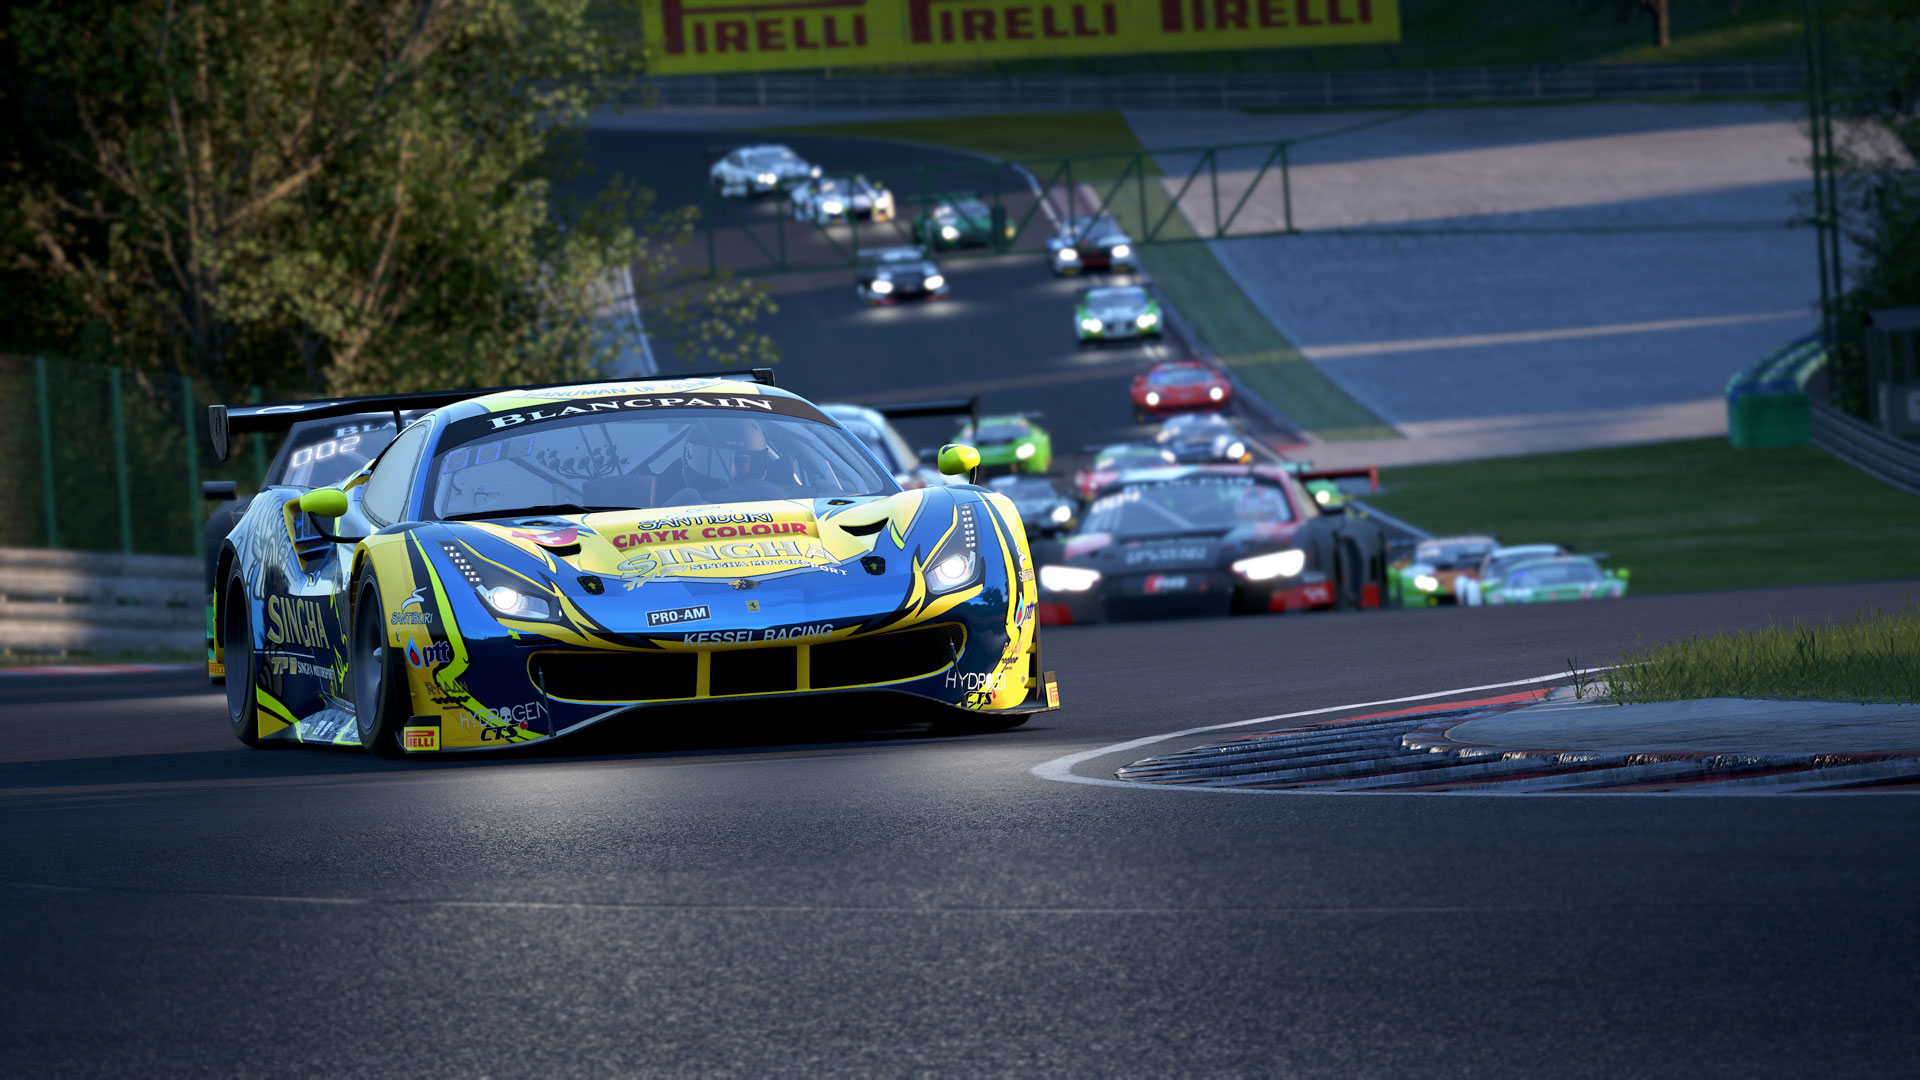 Assetto Corsa: The franchise generated 100 million euros